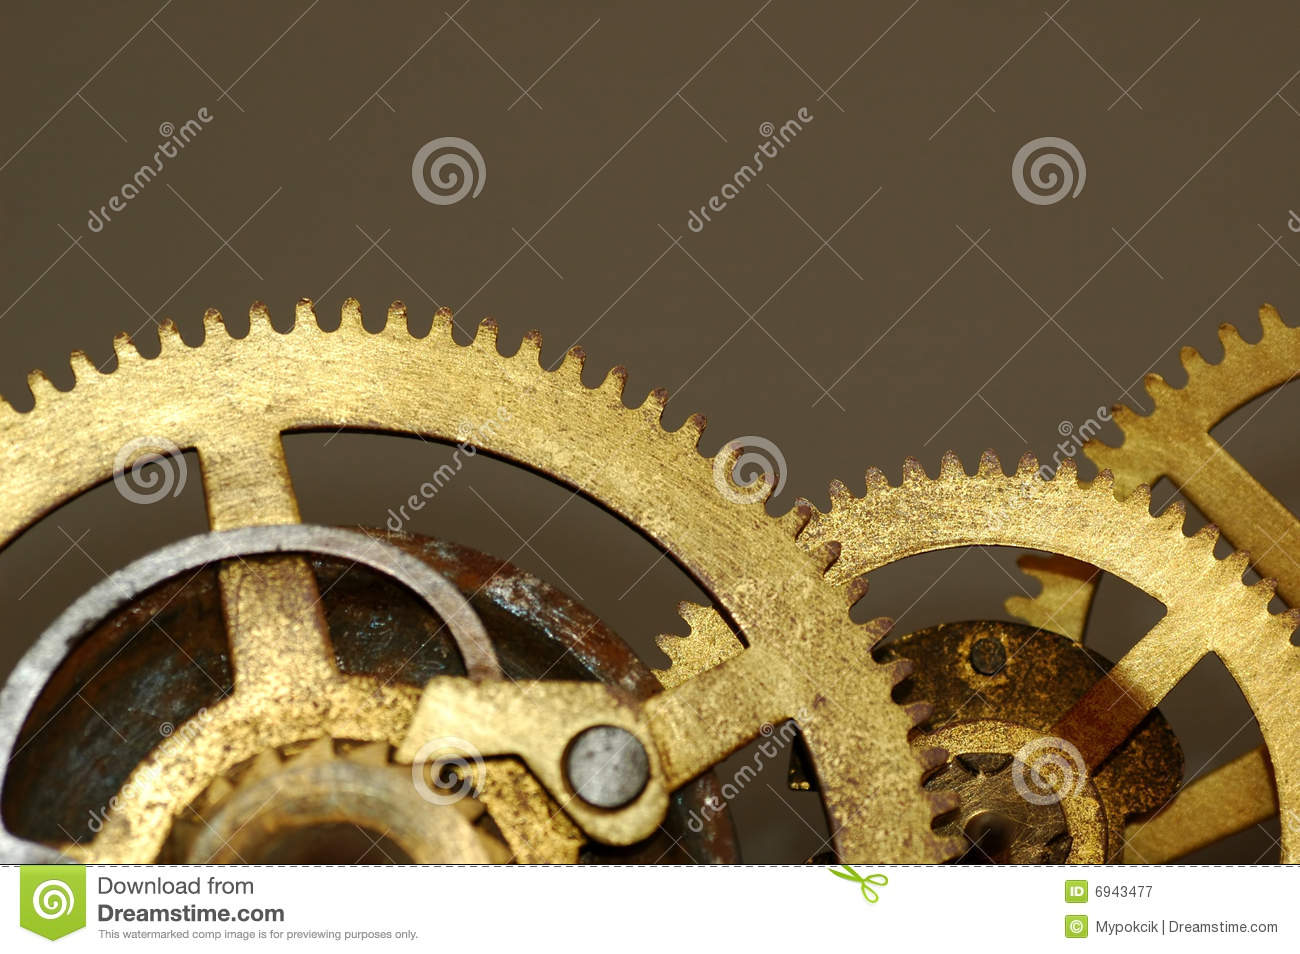 Old Clock Gears : Old clock gears royalty free stock photography image